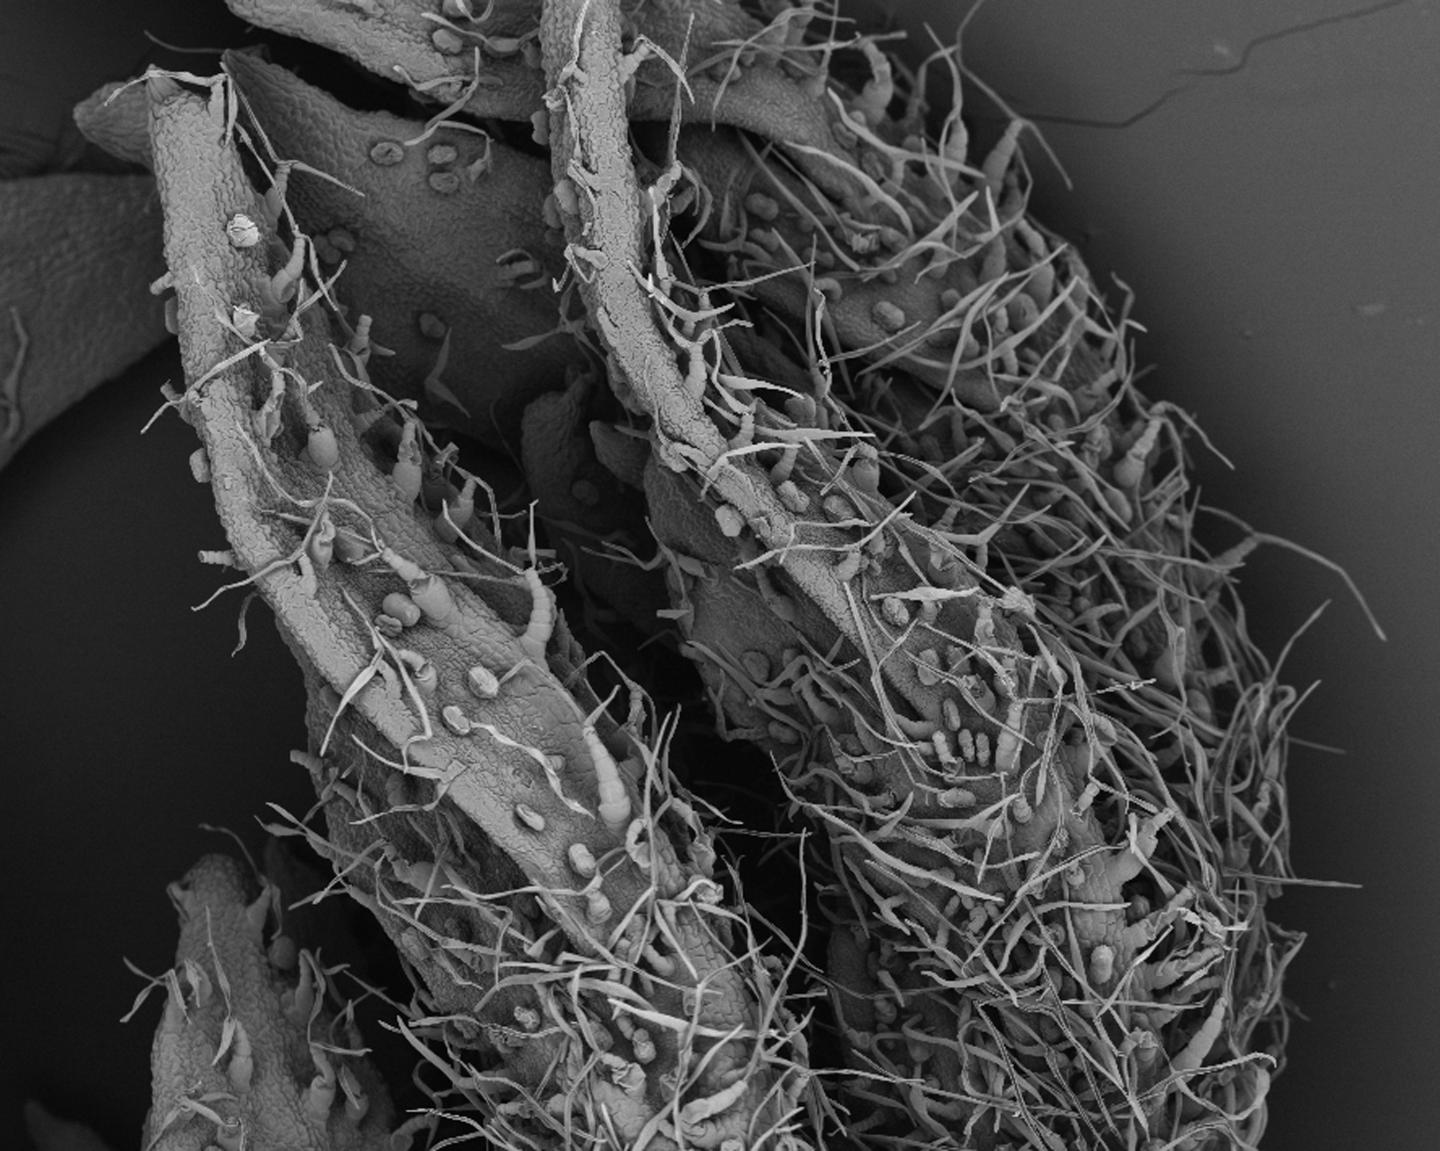 <i>Artemisia annua</i> leaf as seen under the scanning electron microscope. The glandular trichomes (with a more circular shape), which produce artemisinin, are clearly visible. [CRAG]&#8221; width=&#8221;60%&#8221; height=&#8221;60%&#8221; /><br /> <span class=